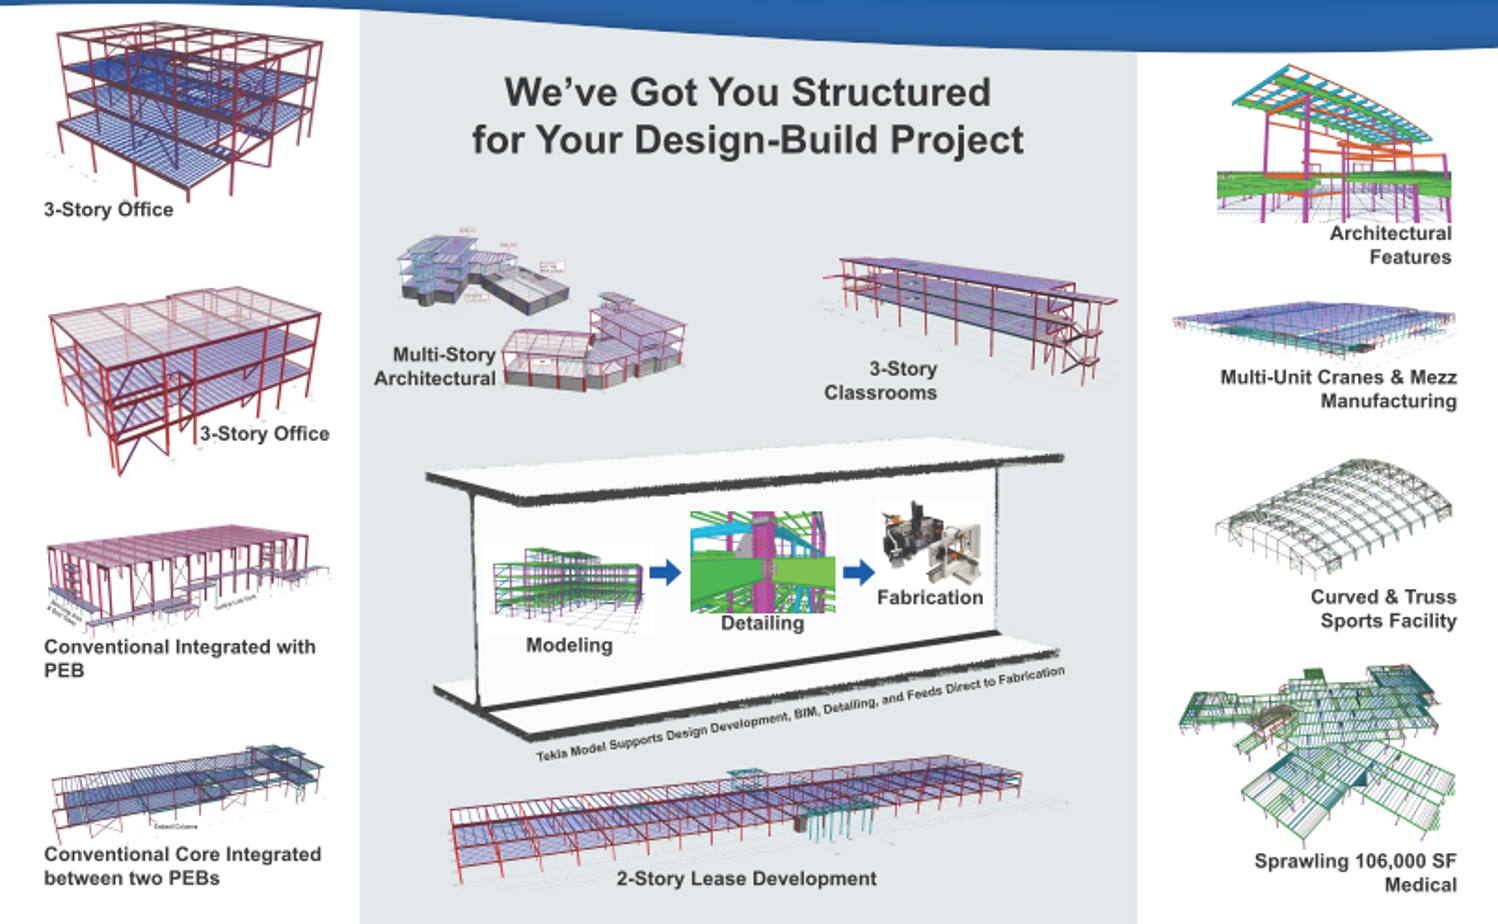 Flexible Design          - -Designers and owners can have fully detailed CADD/CAM/BIM files to integrate into their designs-Projects can now include both pre-engineered and conventional buildings from a single source, allowing the focus to be on providing our customersthe most efficient and effective design-A wide variety of project types can now enjoy the lead times and cost savings that are synonymous with the Pre-Engineered market